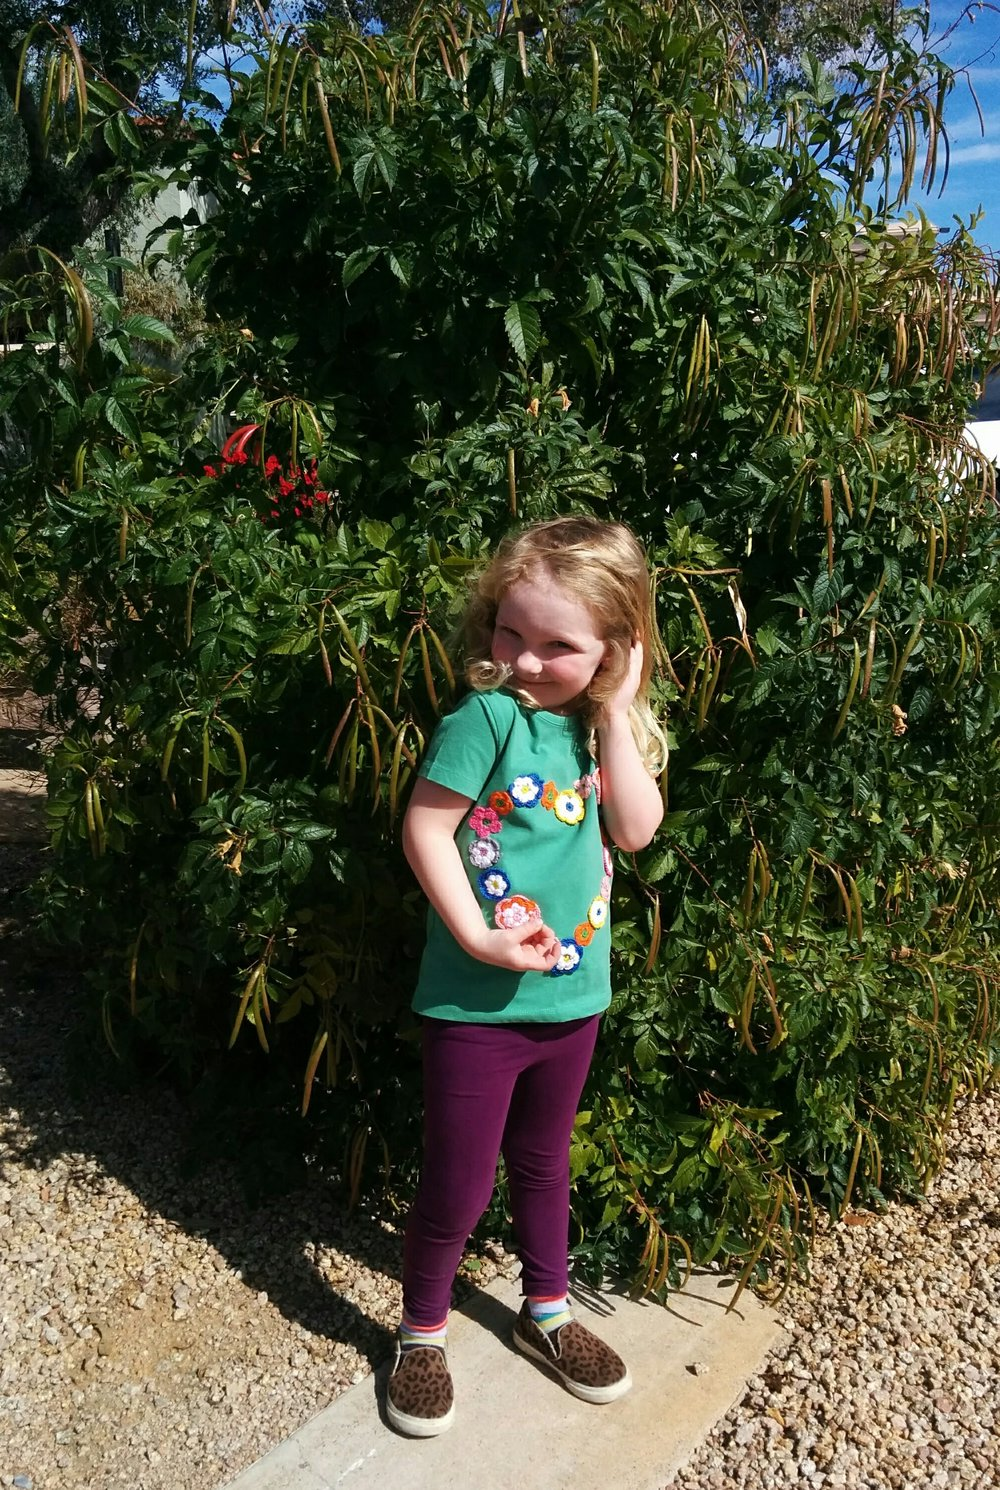 Posing in front of a plant. She loves pictures right now!